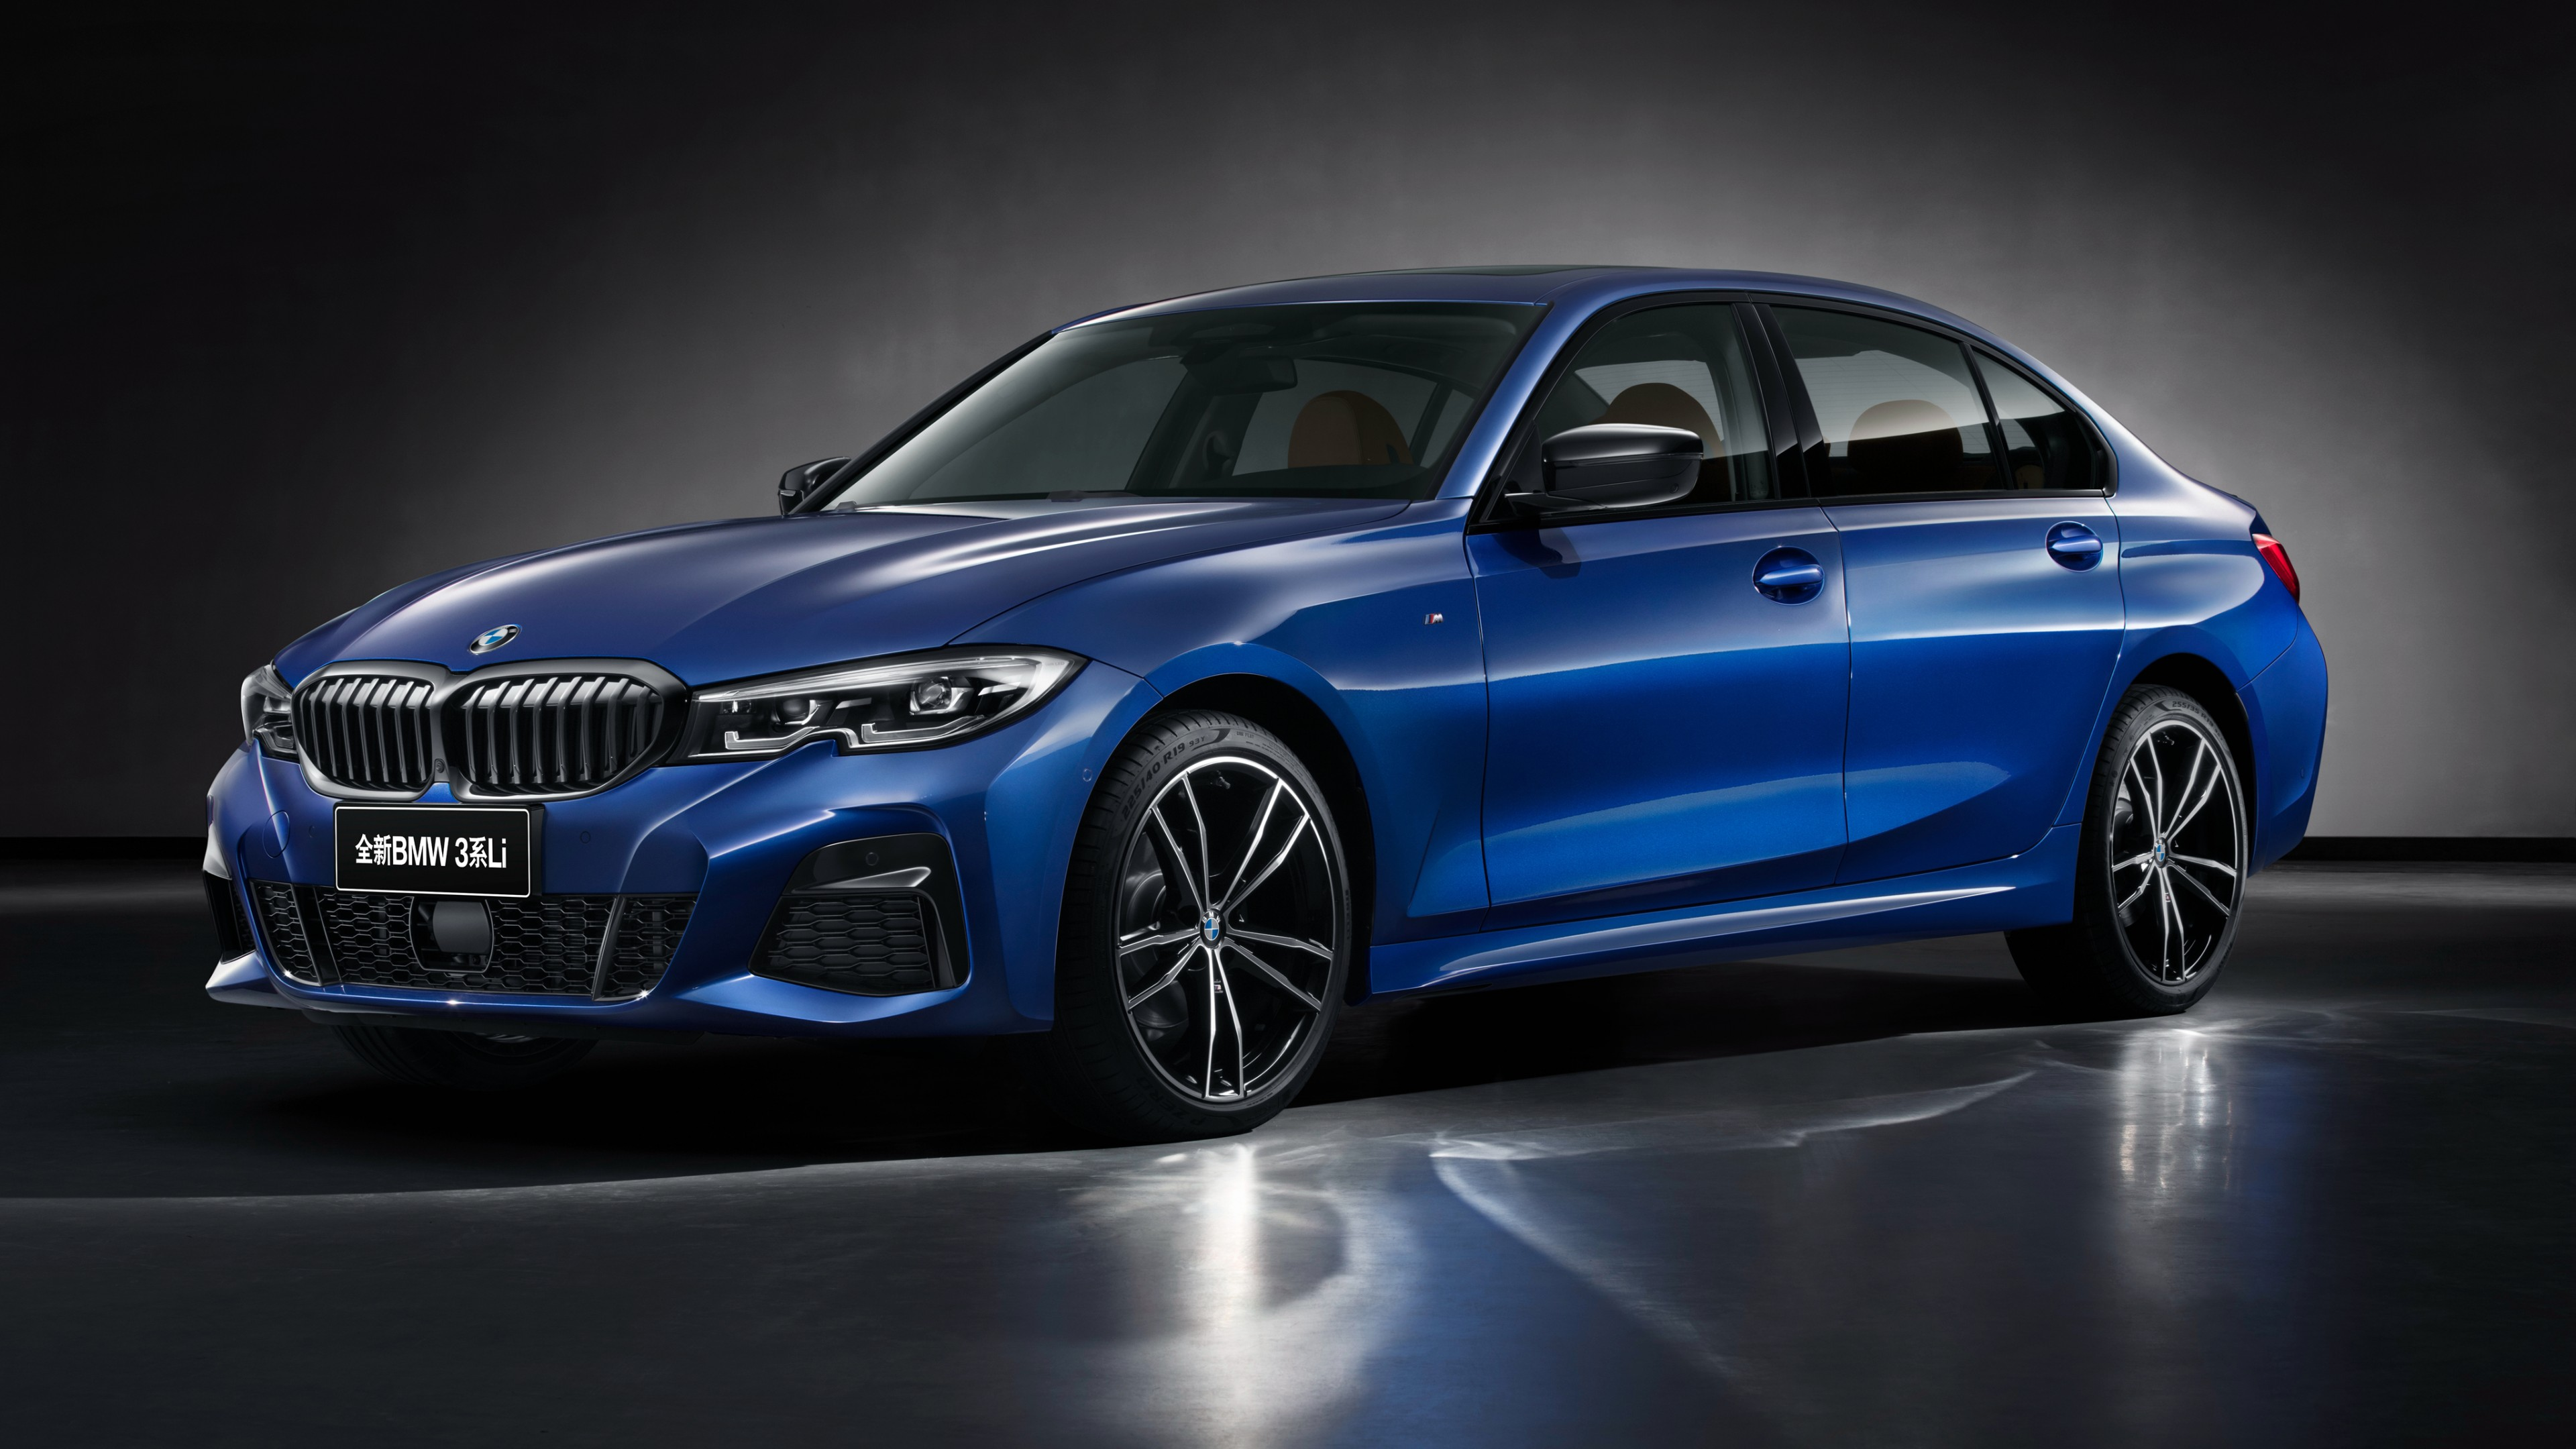 BMW 325Li M Sport 2019 4K Wallpaper